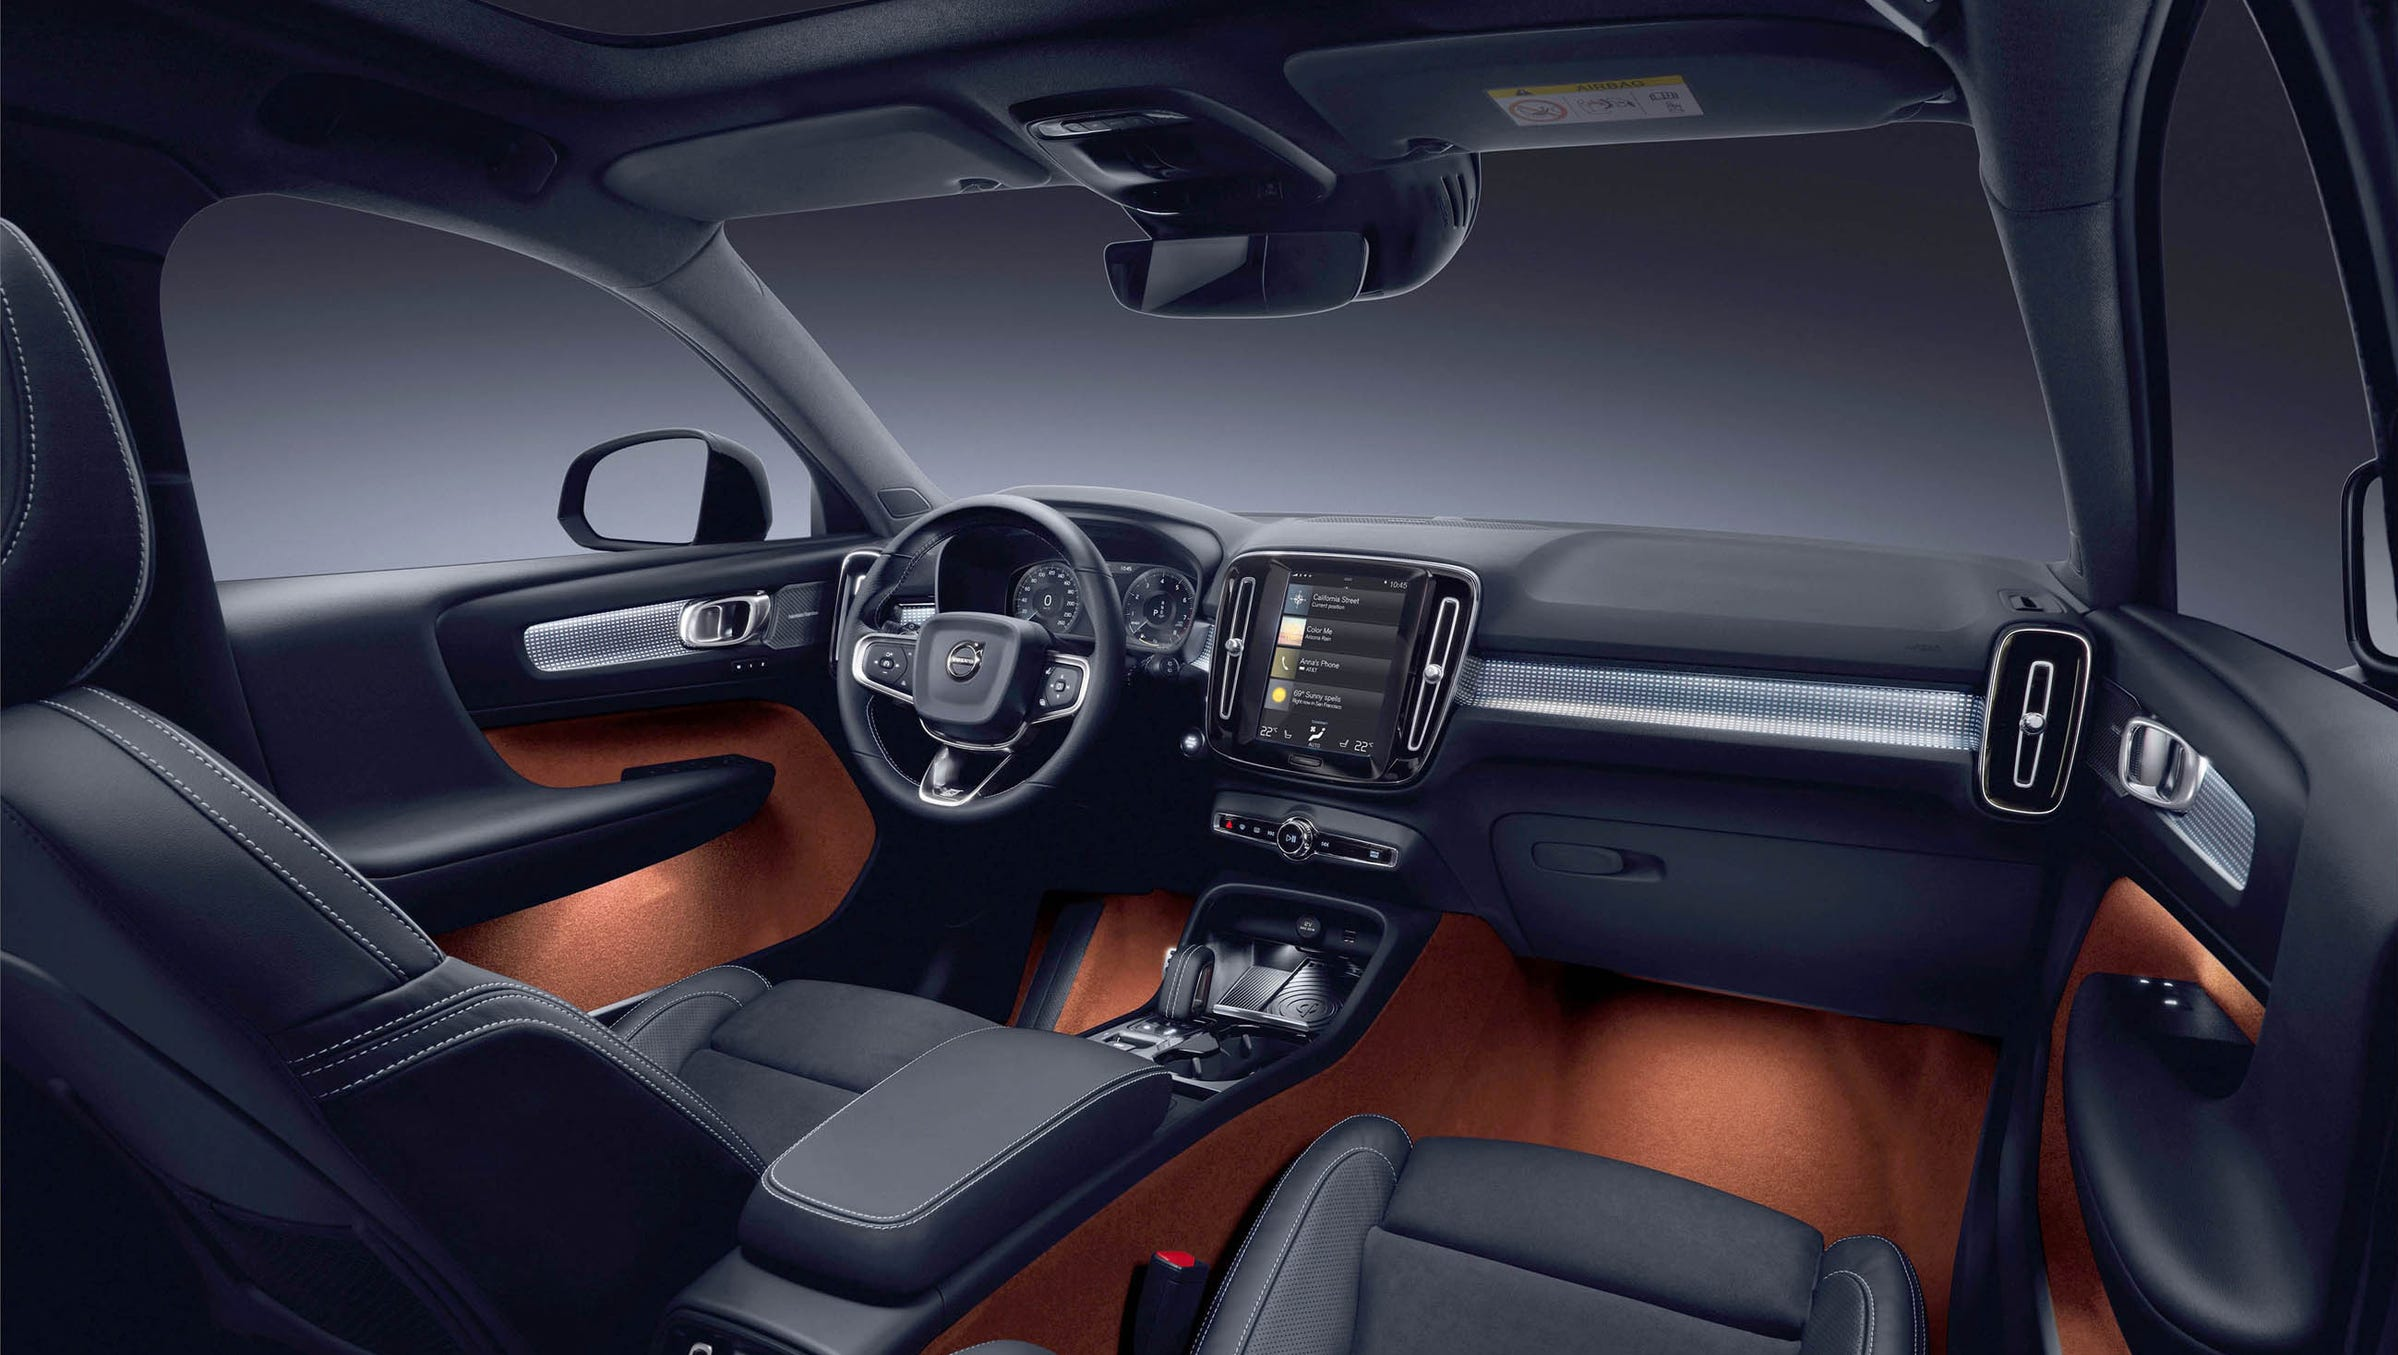 2019 Volvo Xc40 Review 4 Star Compact Luxury Suv Delivers